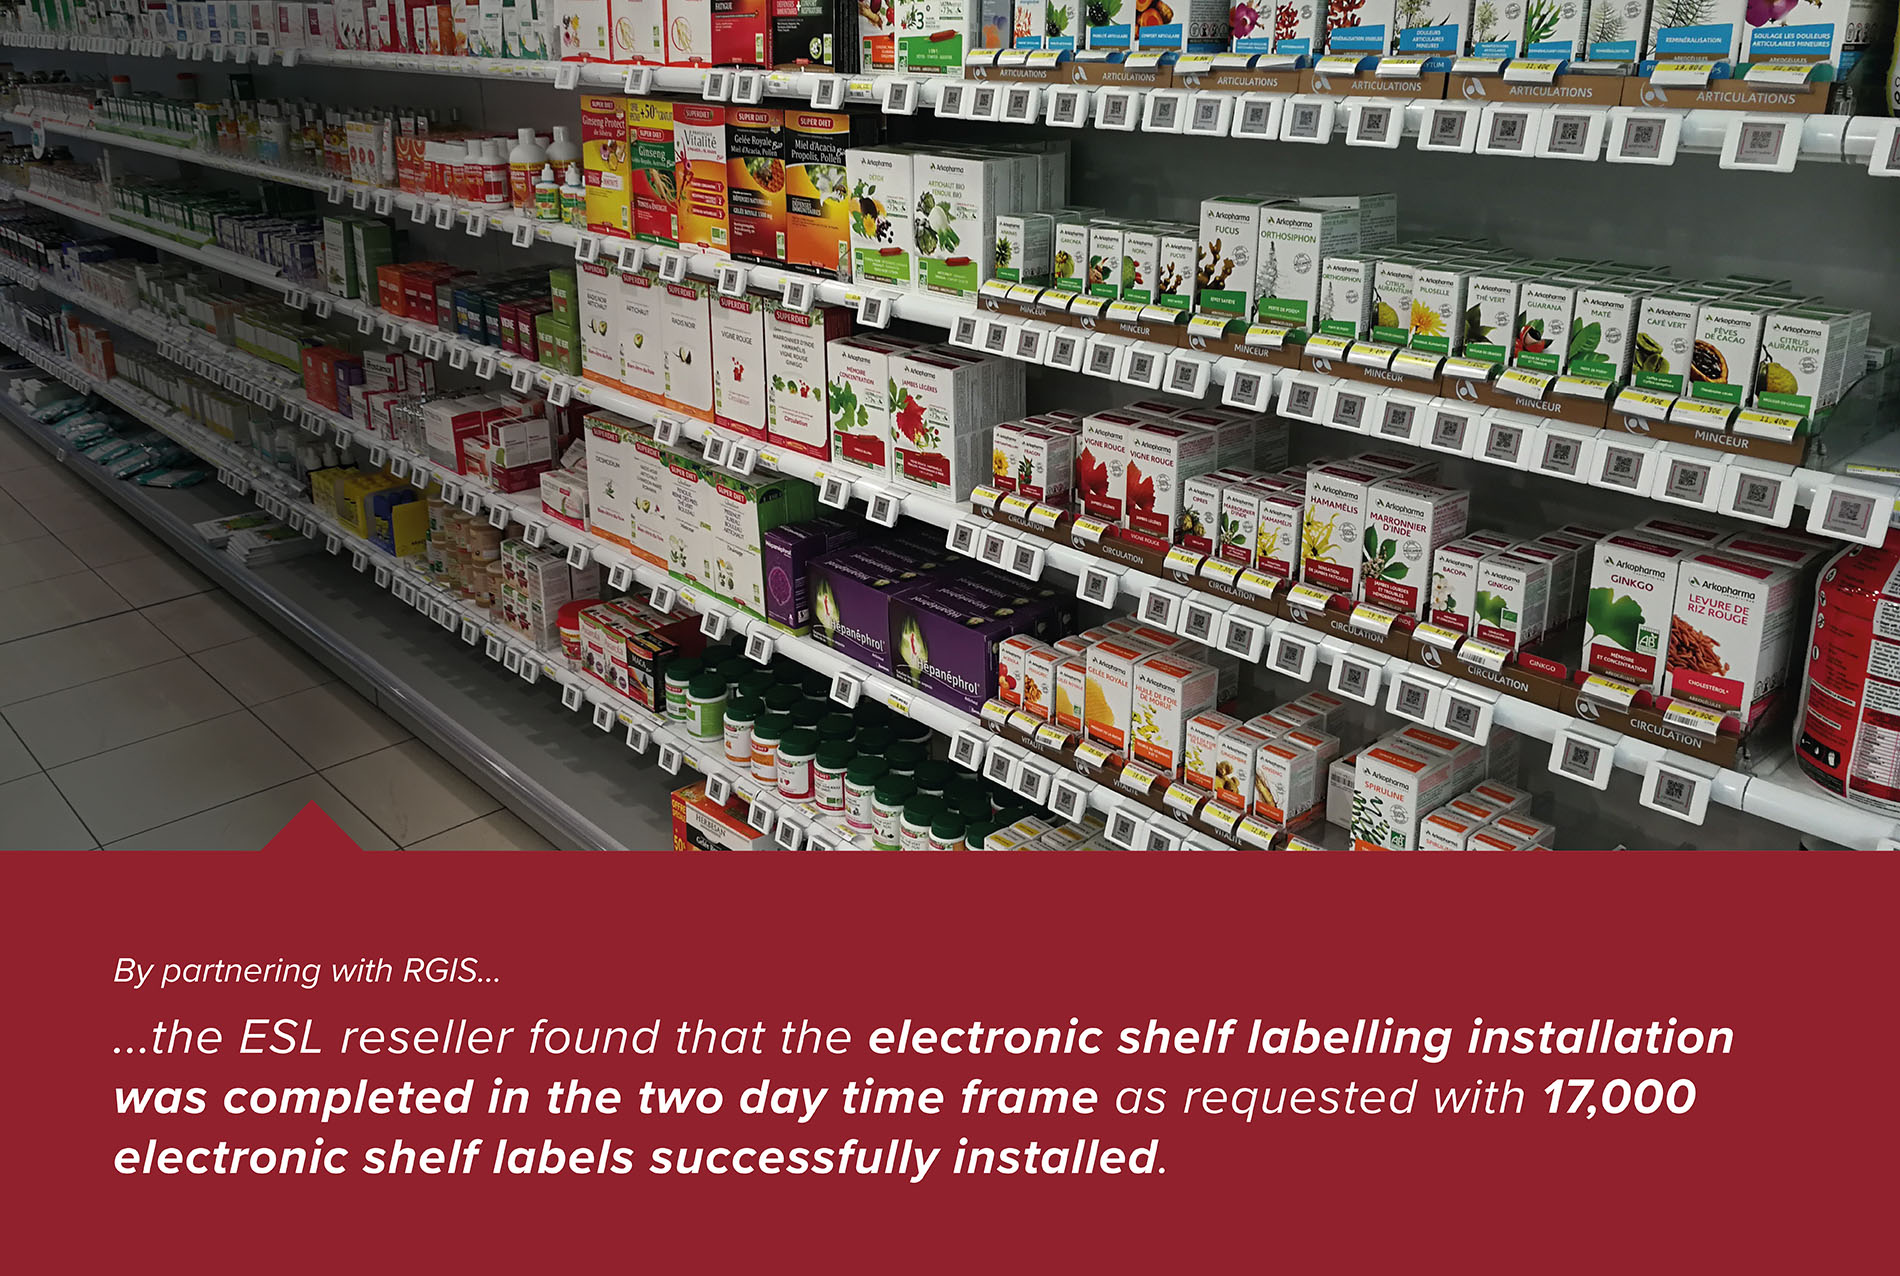 Installation of Electronic Shelf Labelling